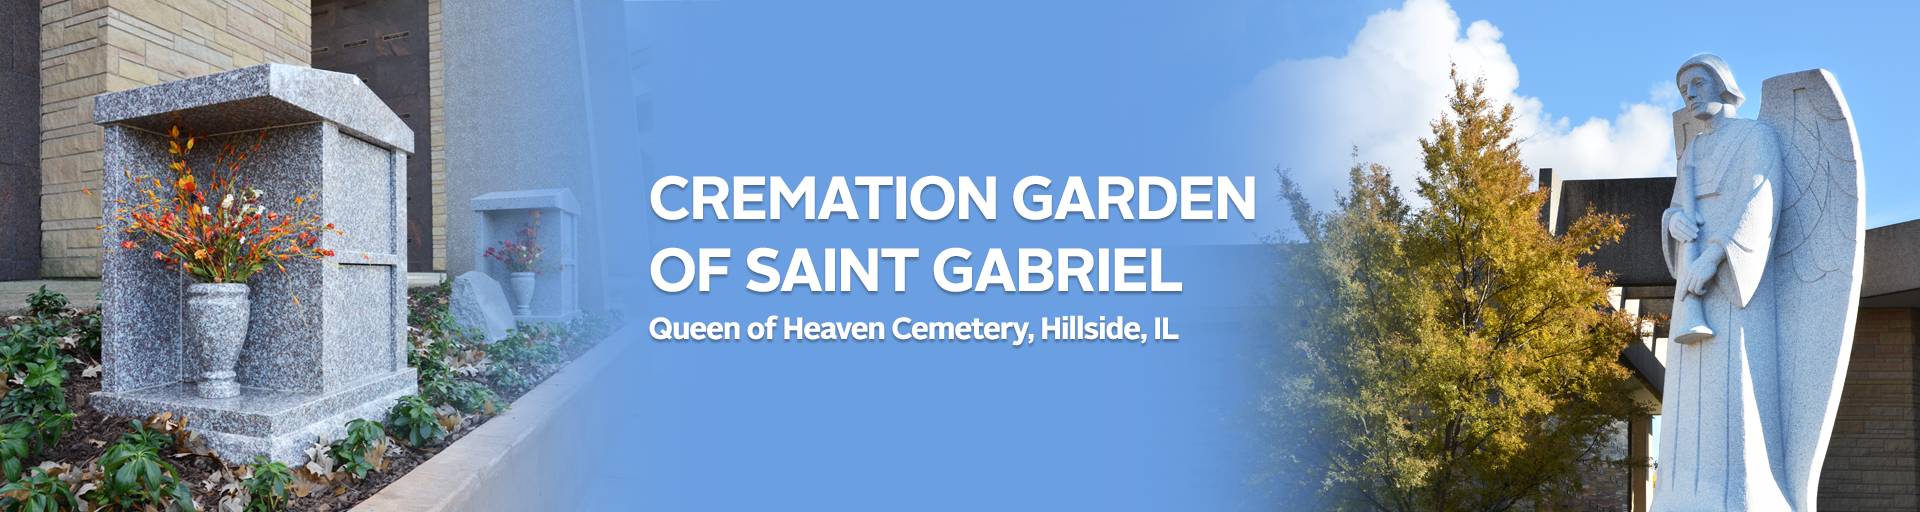 Cremation Garden of Saint Gabriel